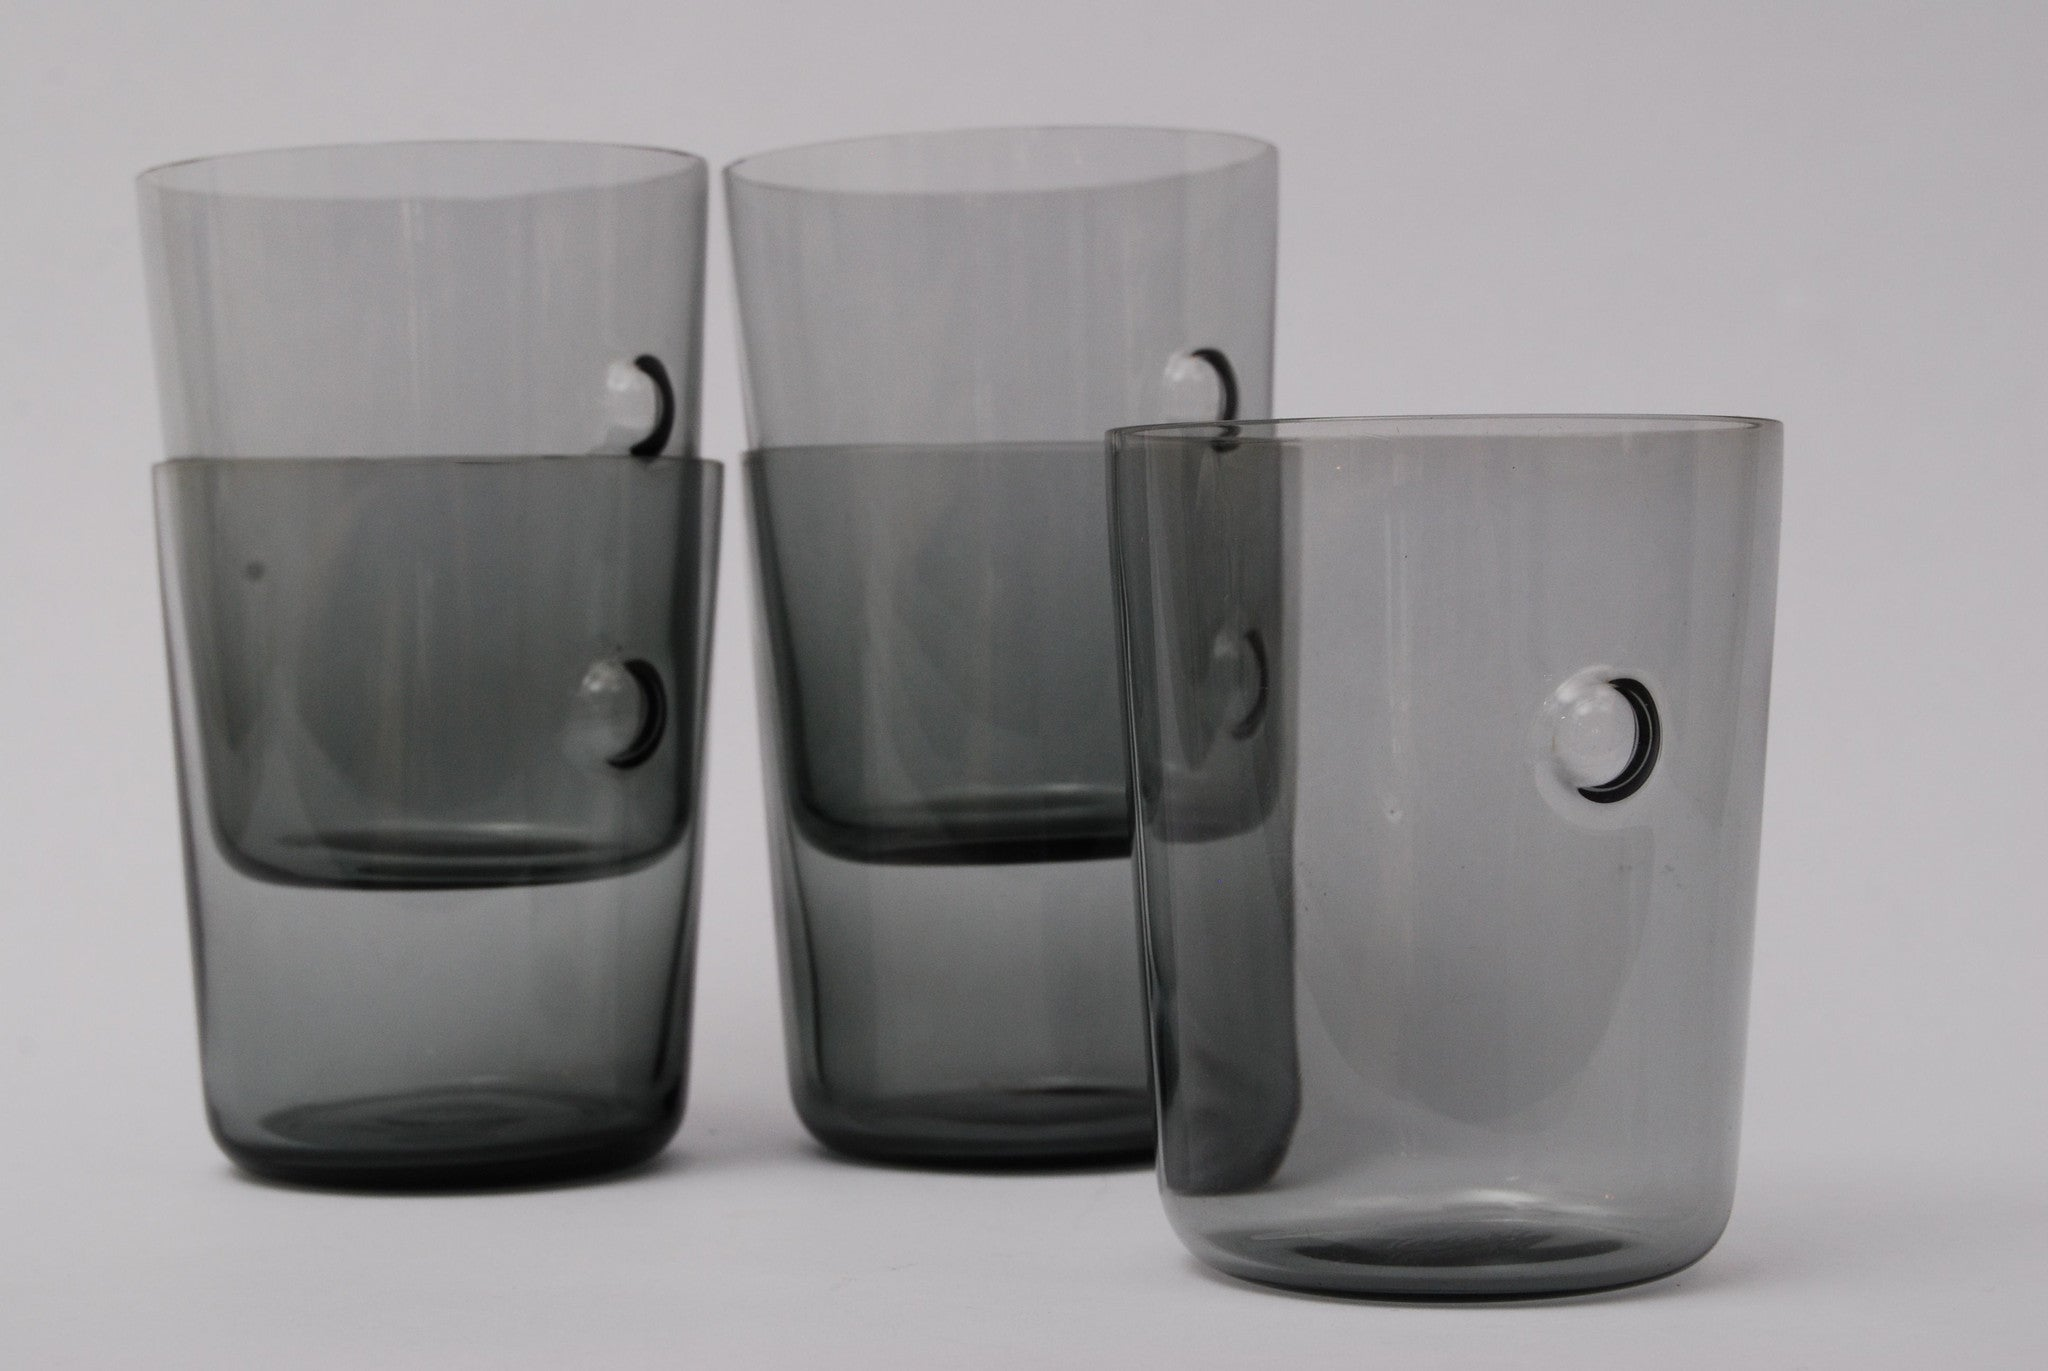 Minima water glasses by Holmegaard